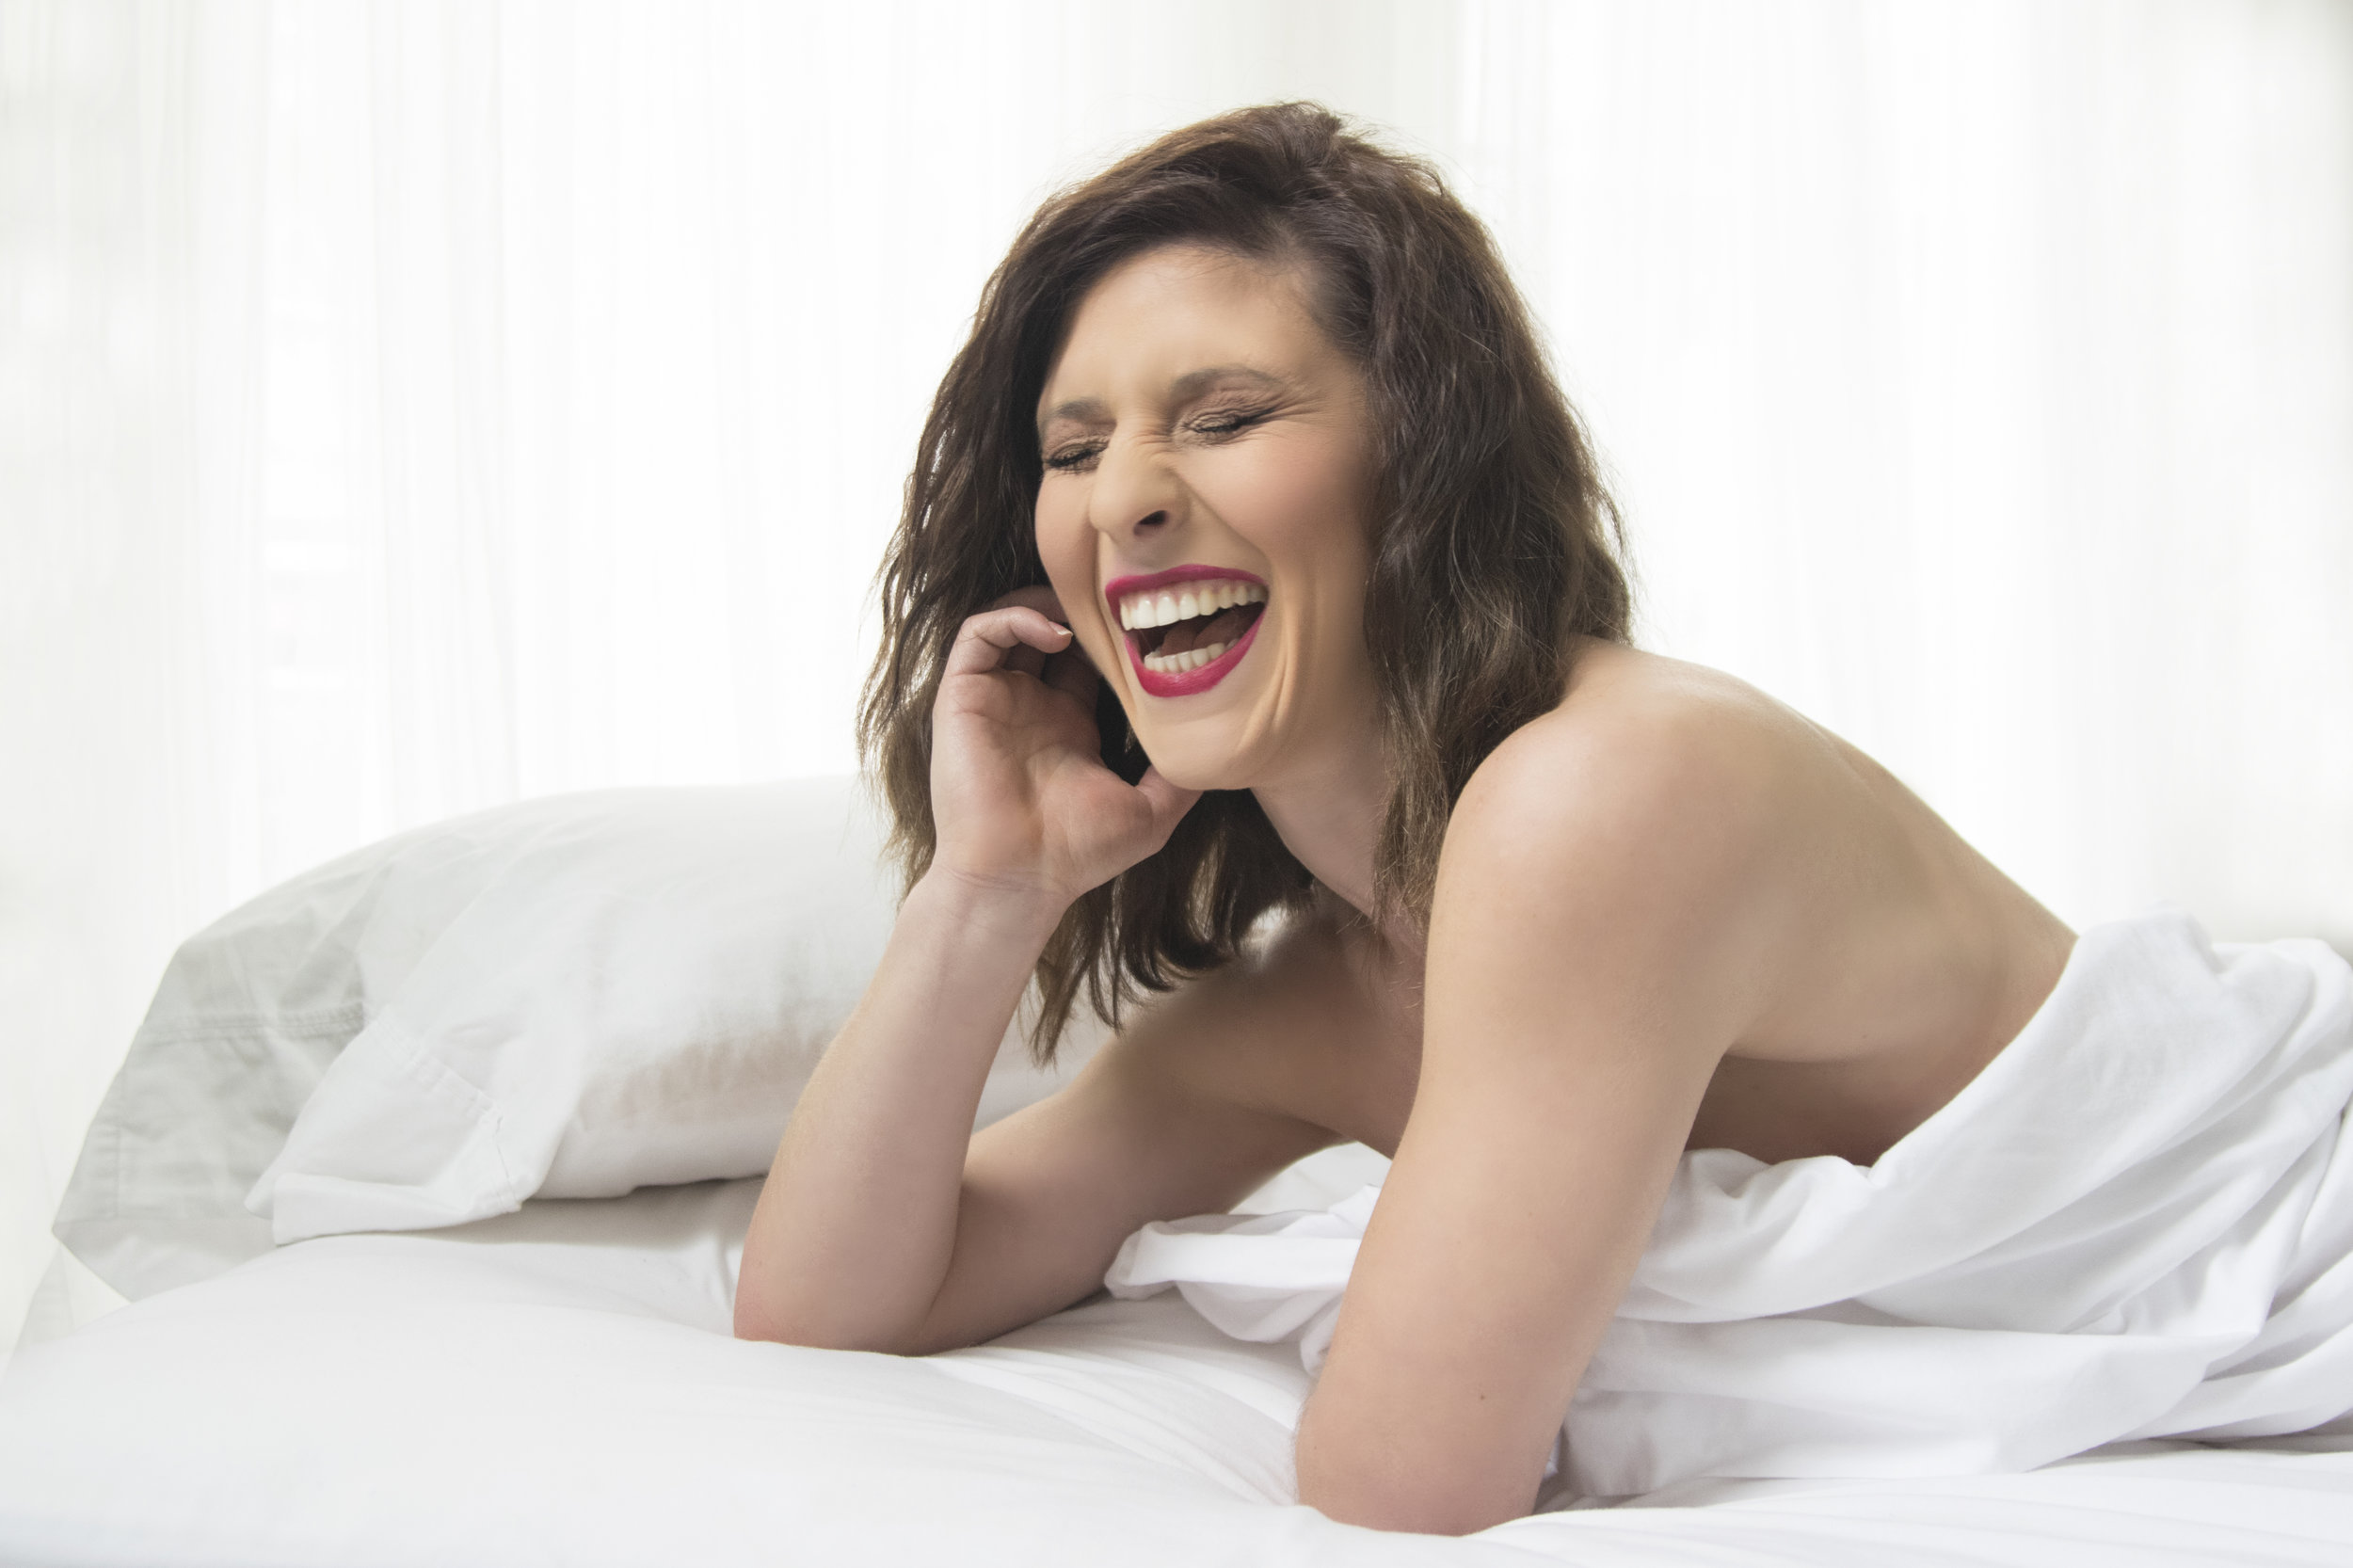 Portrait of a woman laughing in bed